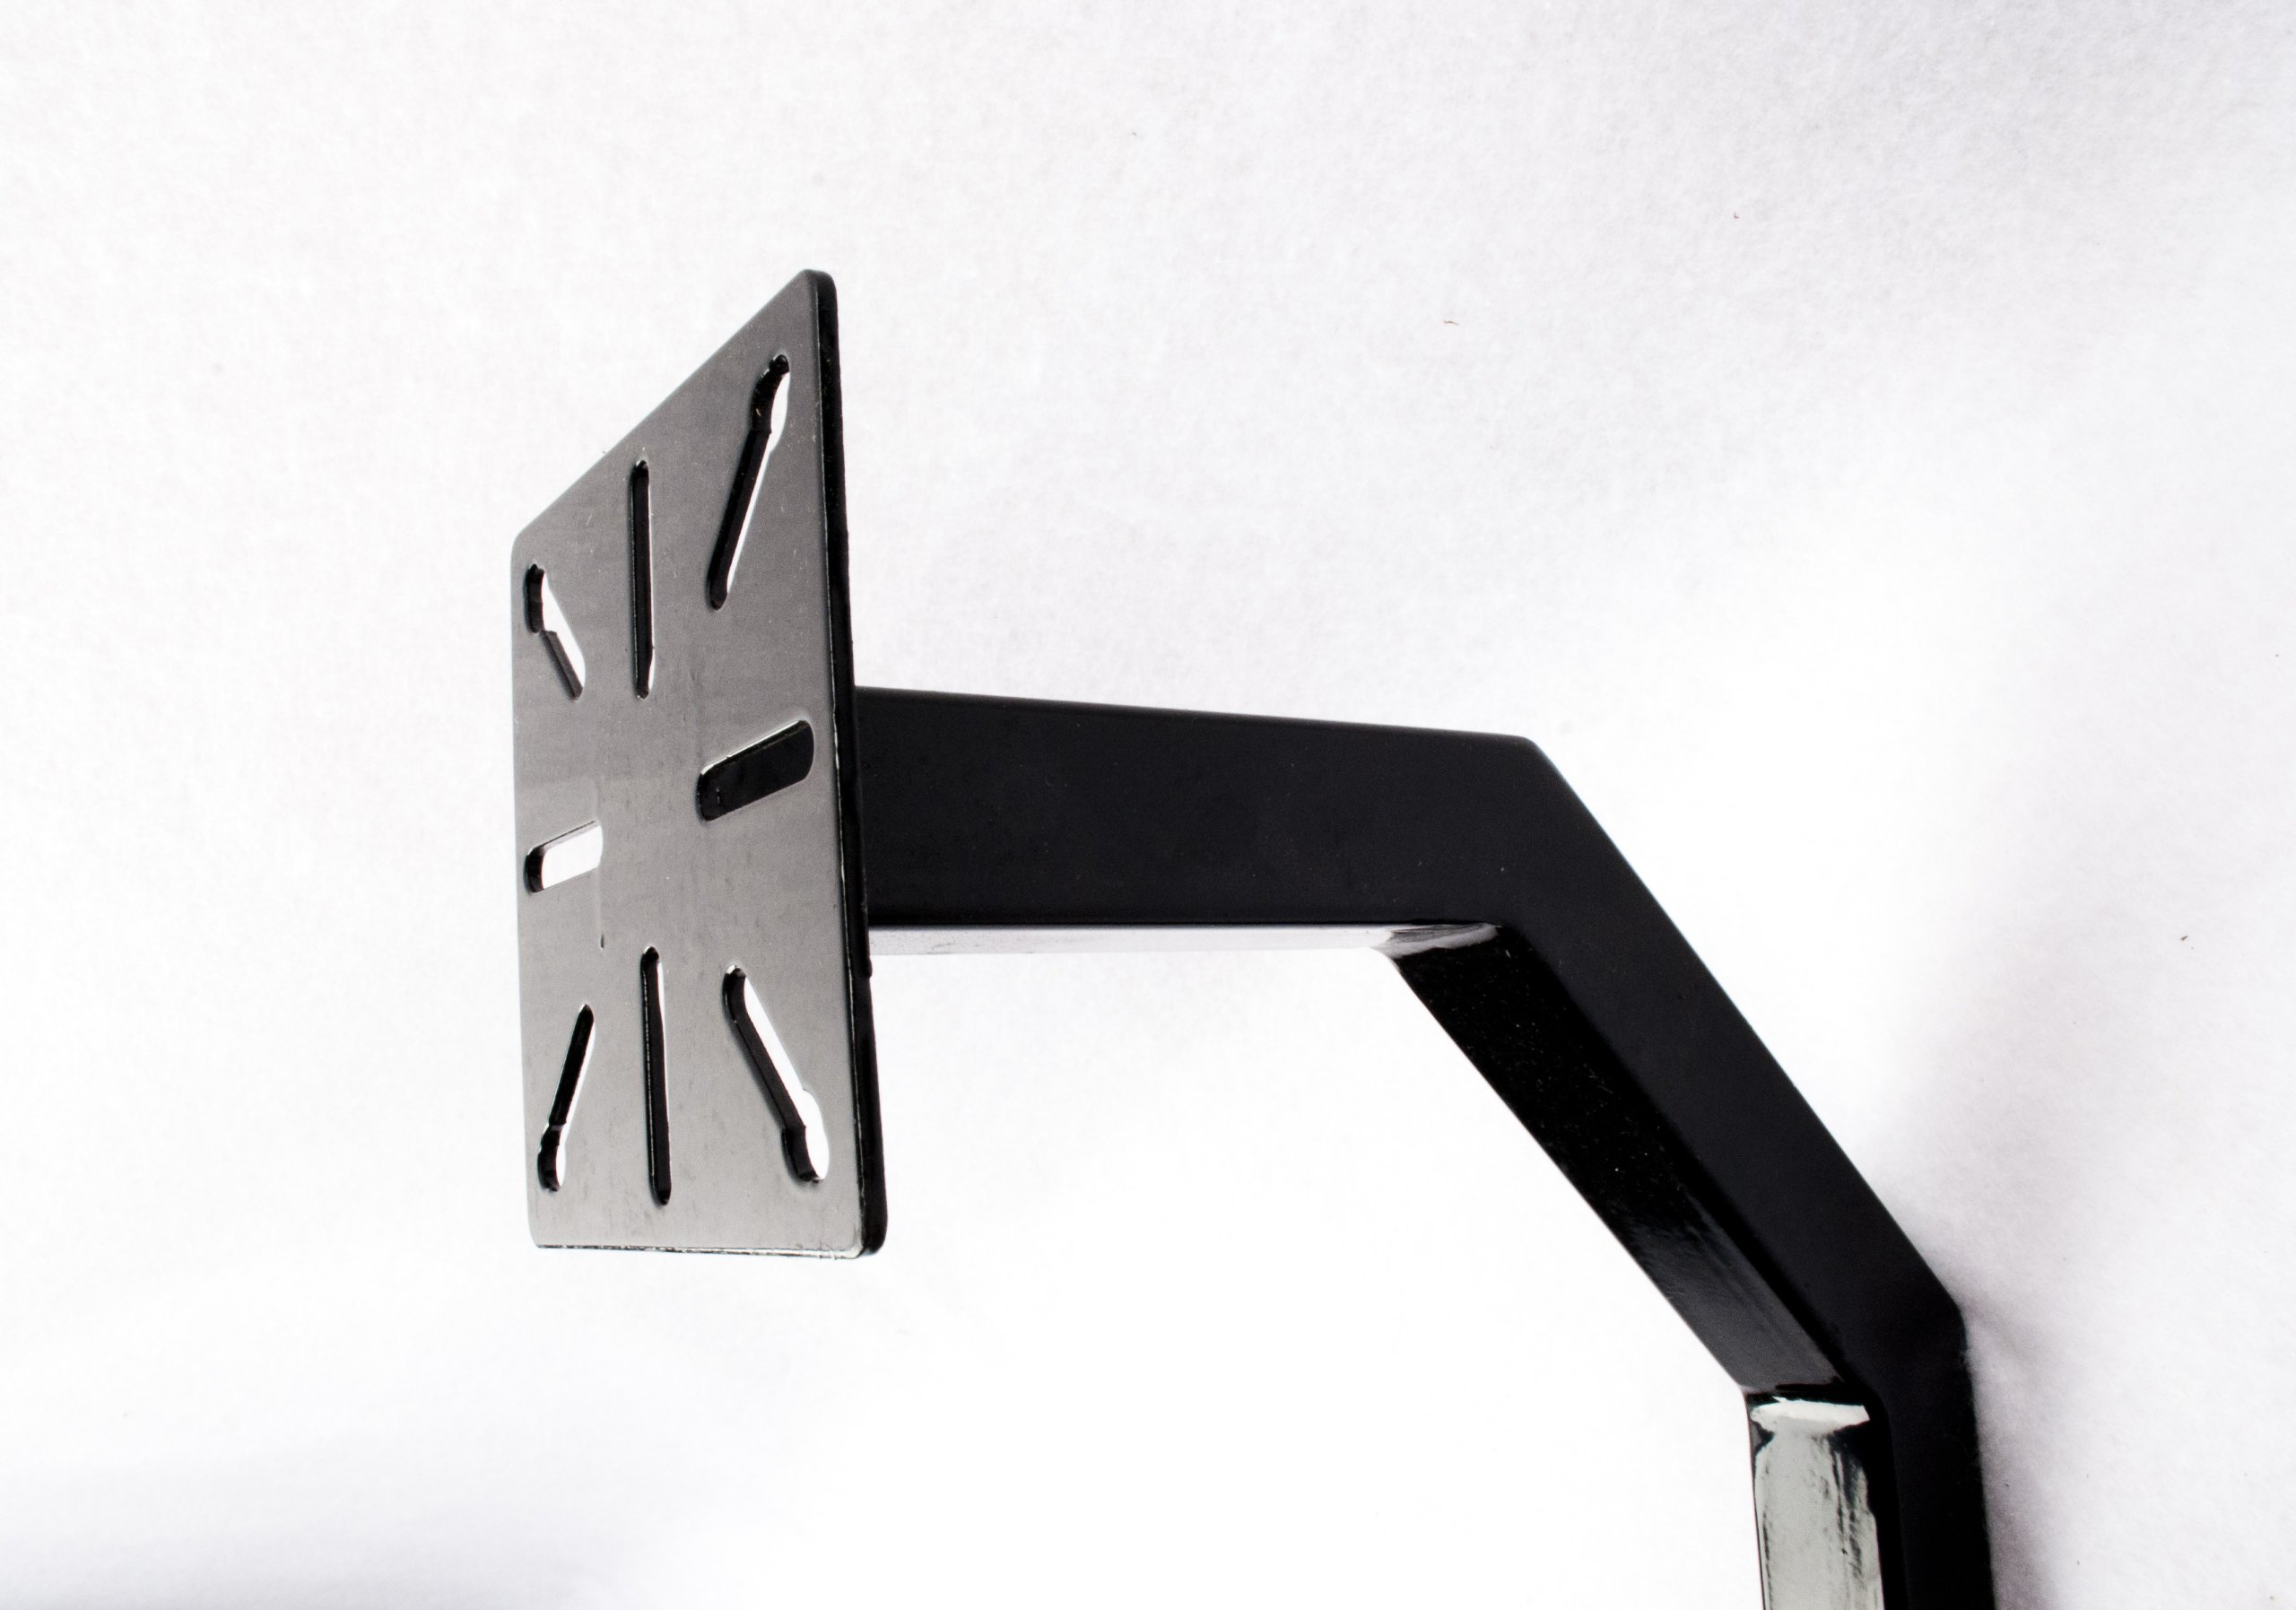 ALEKO LM108 Universal Mounting Post Gate Entry Gooseneck Keypad Stand 51 Inches Tall Black